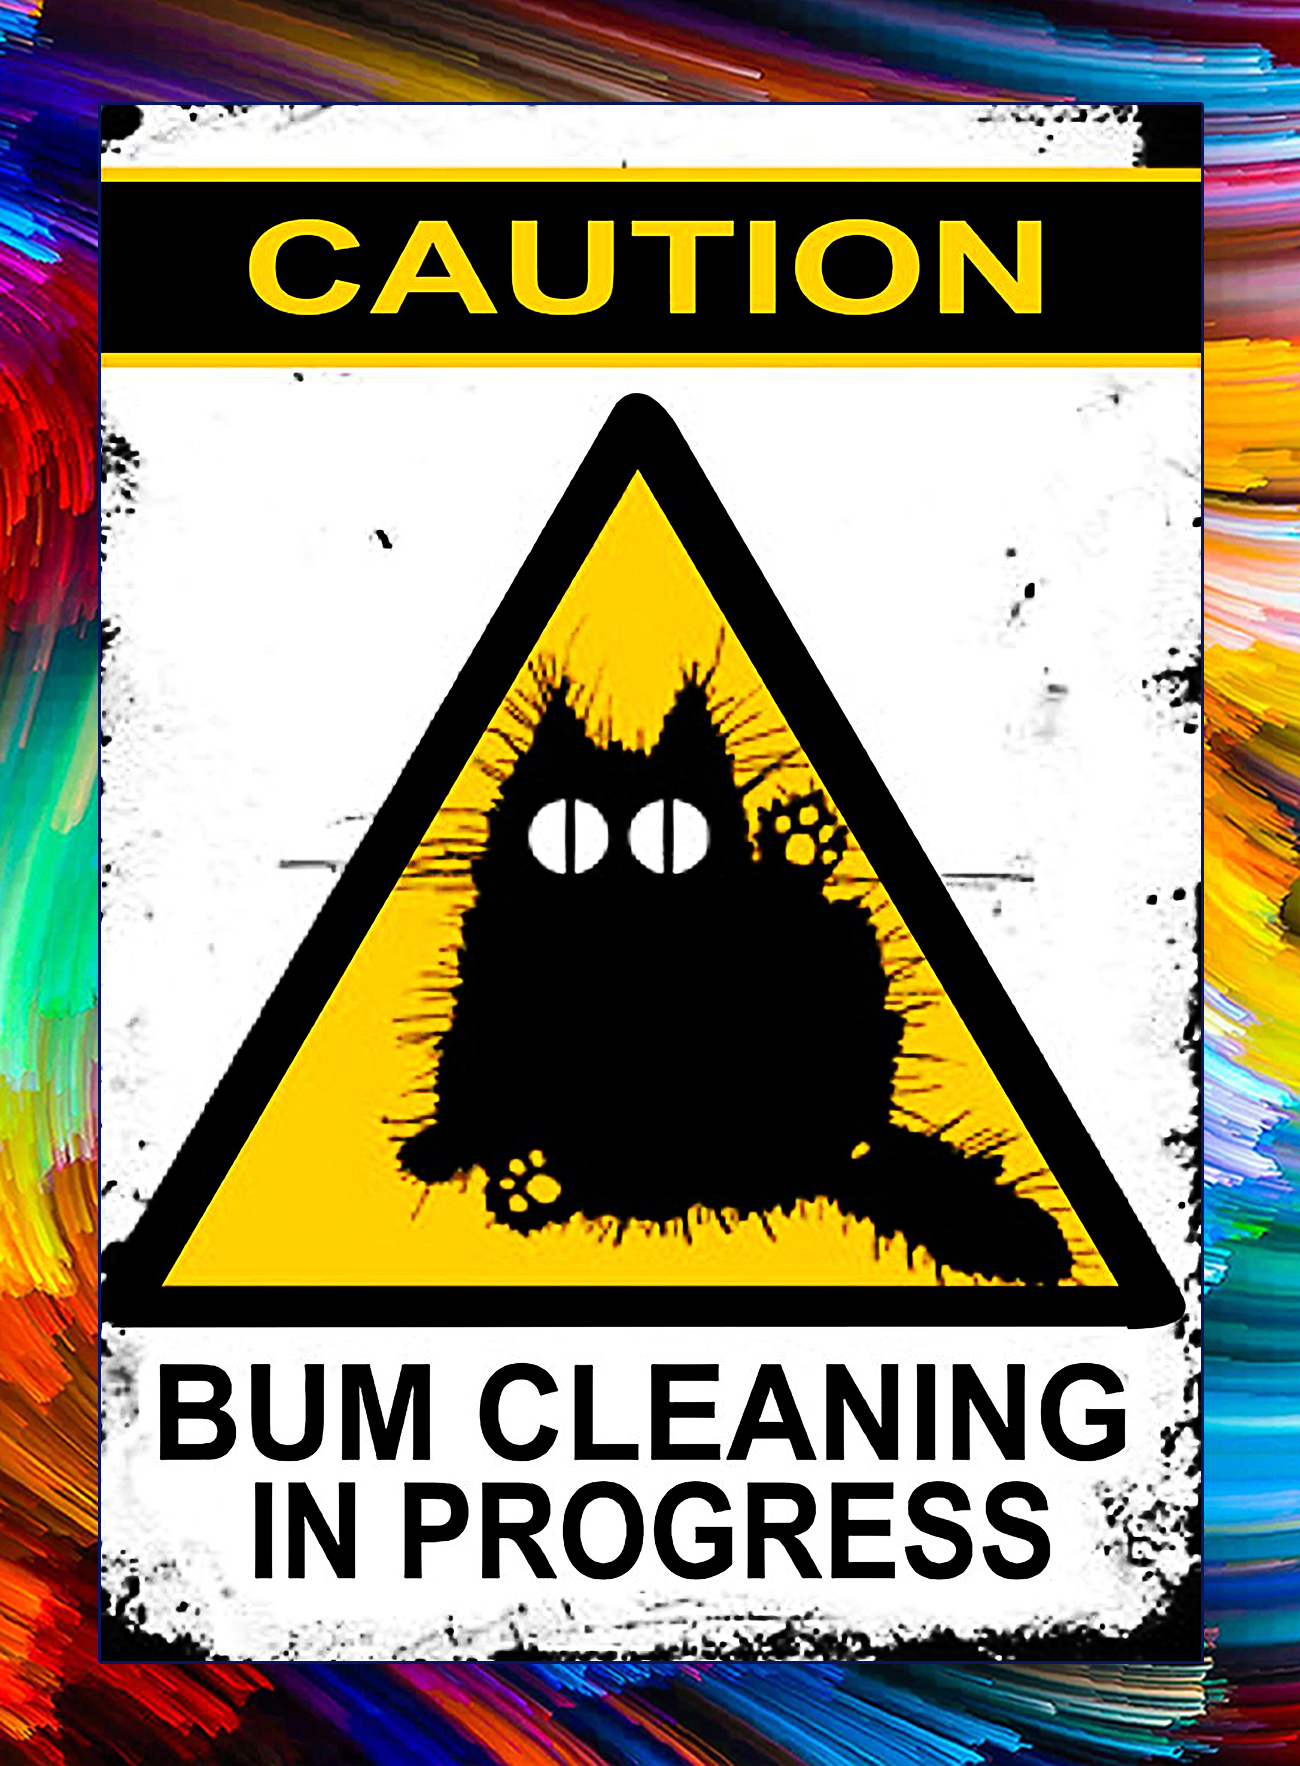 Cat Caution bum cleaning in progress poster - A4